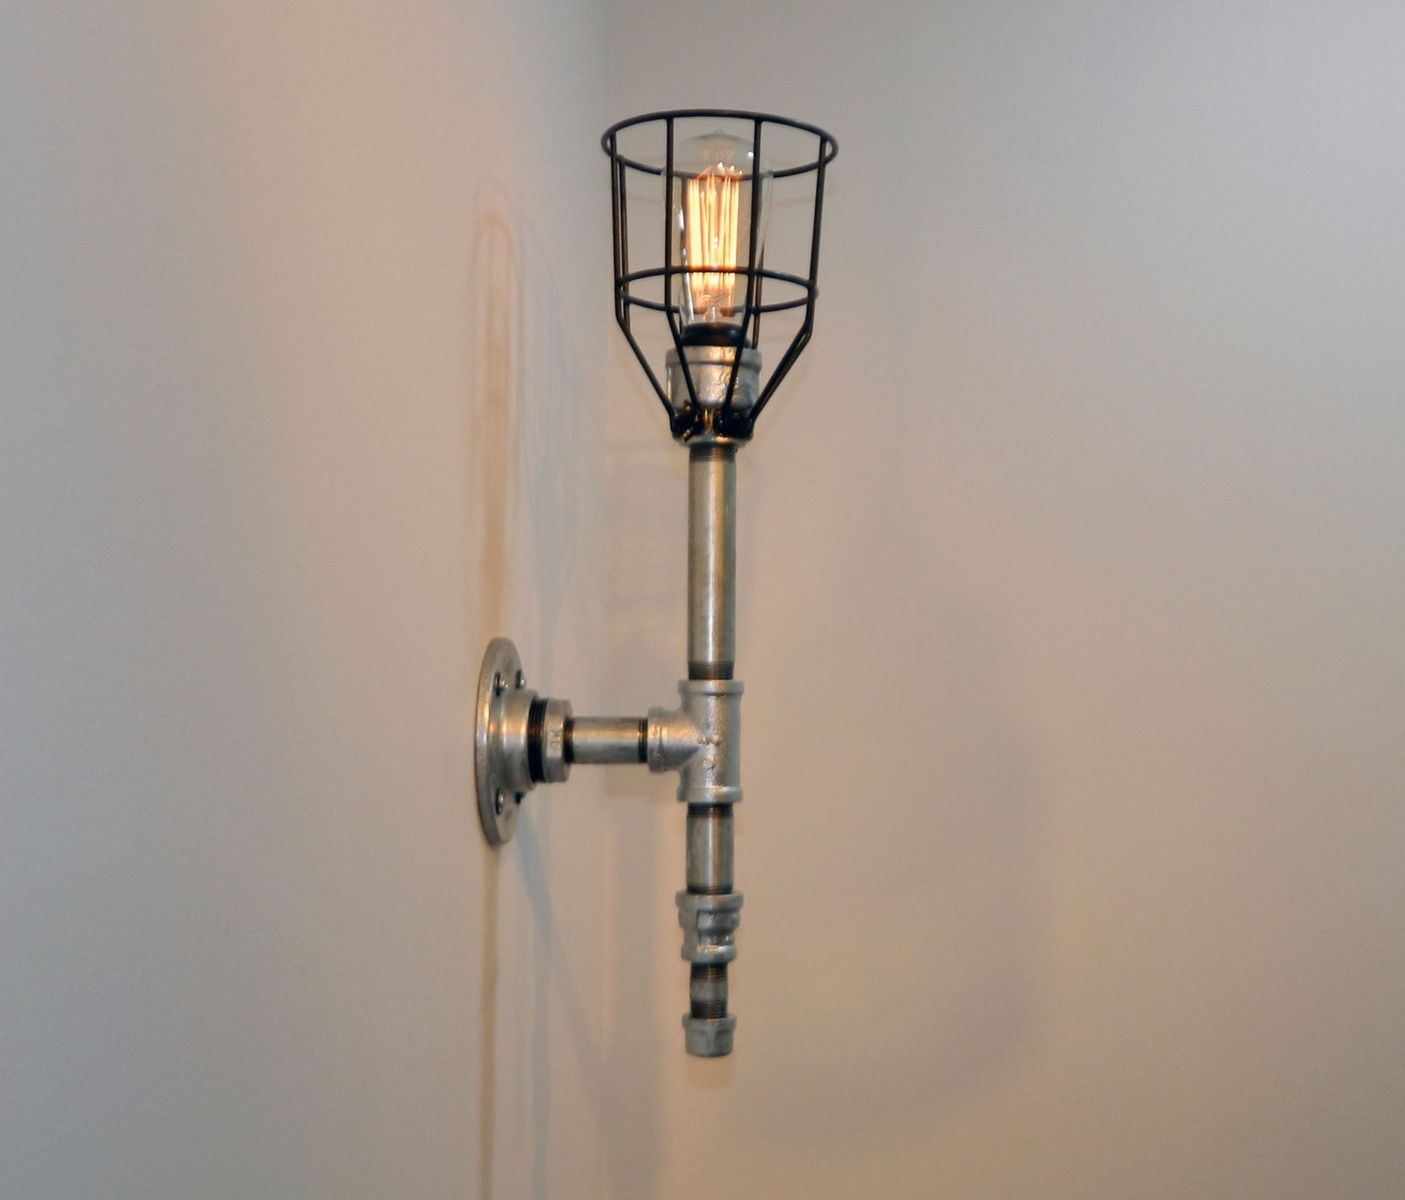 Custom Metal Wall Sconces : Hand Made Wall Sconce: Galvanized Malleable Iron - Industrial Steampunk by Milton Douglas lamp ...